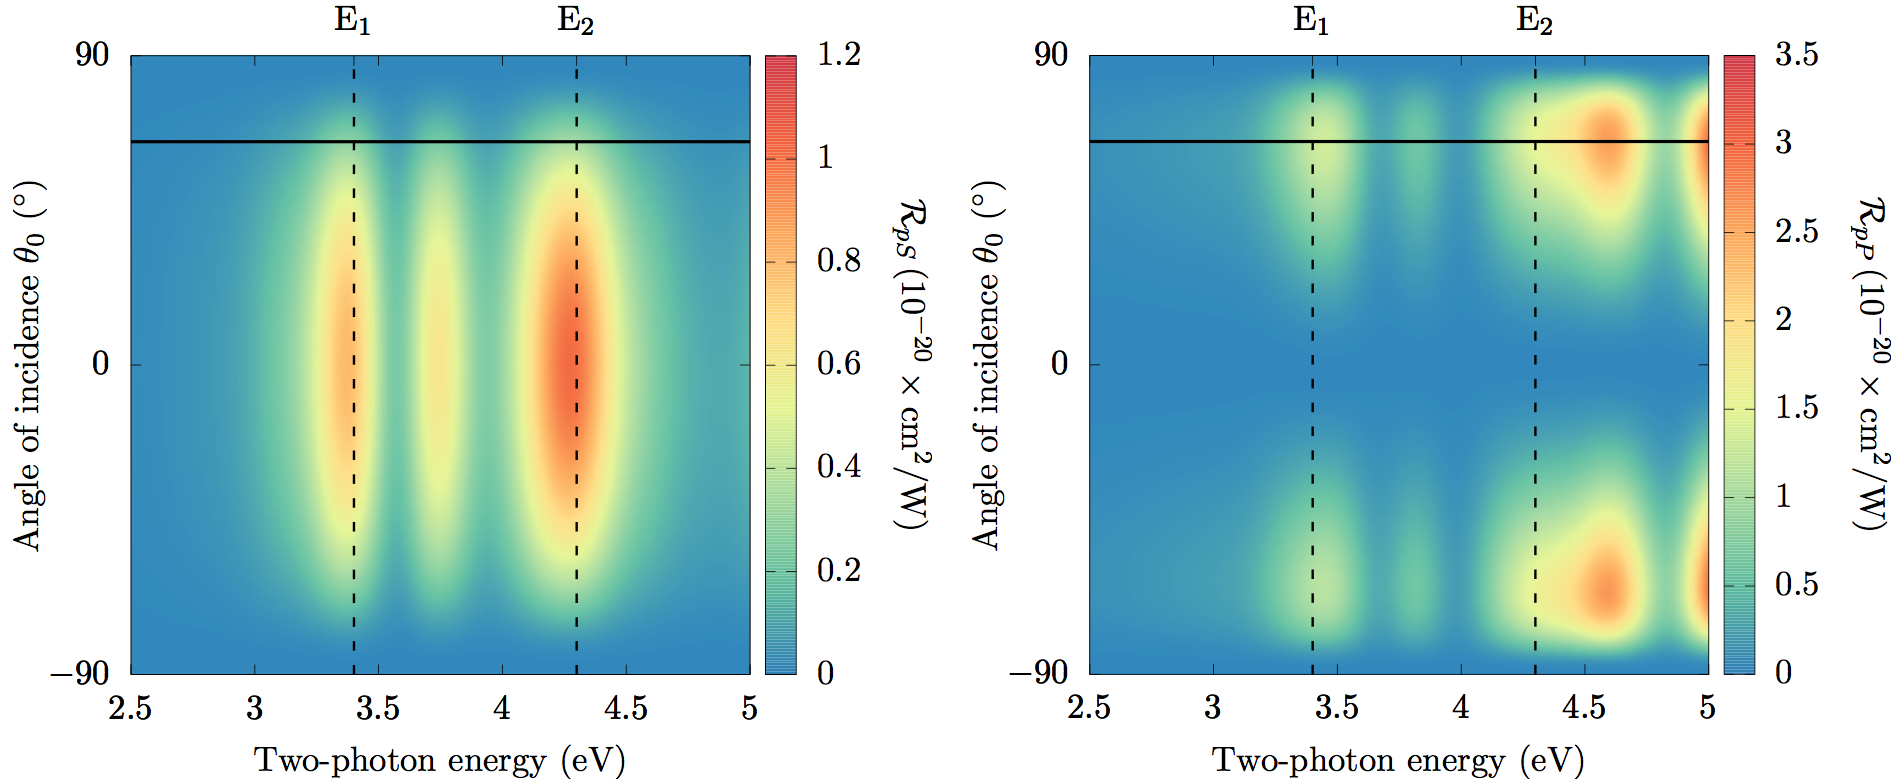 An overview of the angular dependence of the SHG Yield for the Si(111)(1x1)H surface